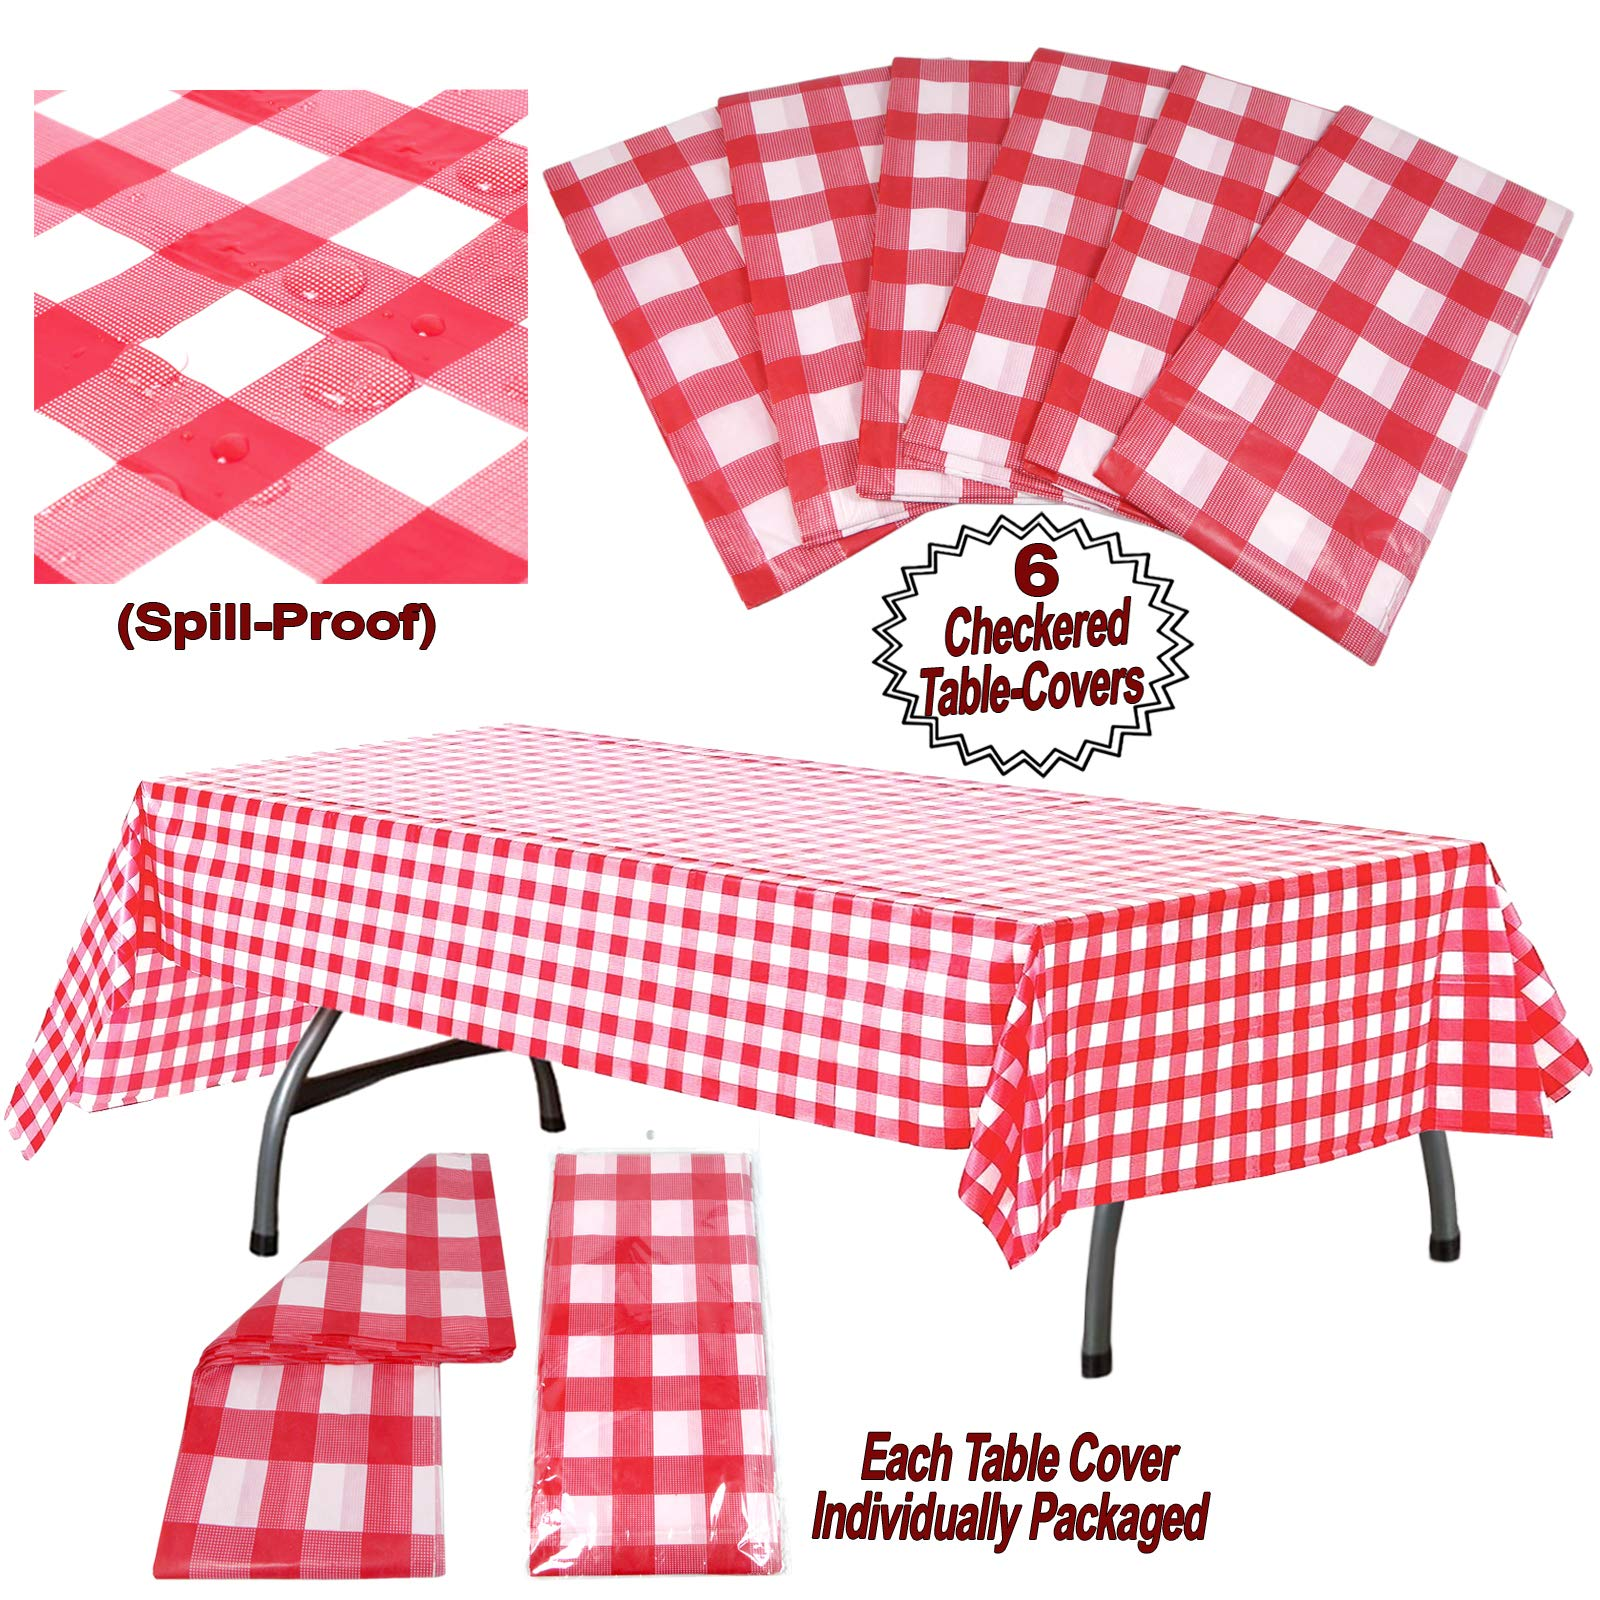 Plastic Checkered Tablecloth | 6 Pcs Pack - 54'' Wide x 108'' Long | Red and White Picnic Disposable Table Cover | Rectangular Gingham Tablecover for Birthdays, Carnivals, Parties | By Anapoliz by Anapoliz (Image #3)